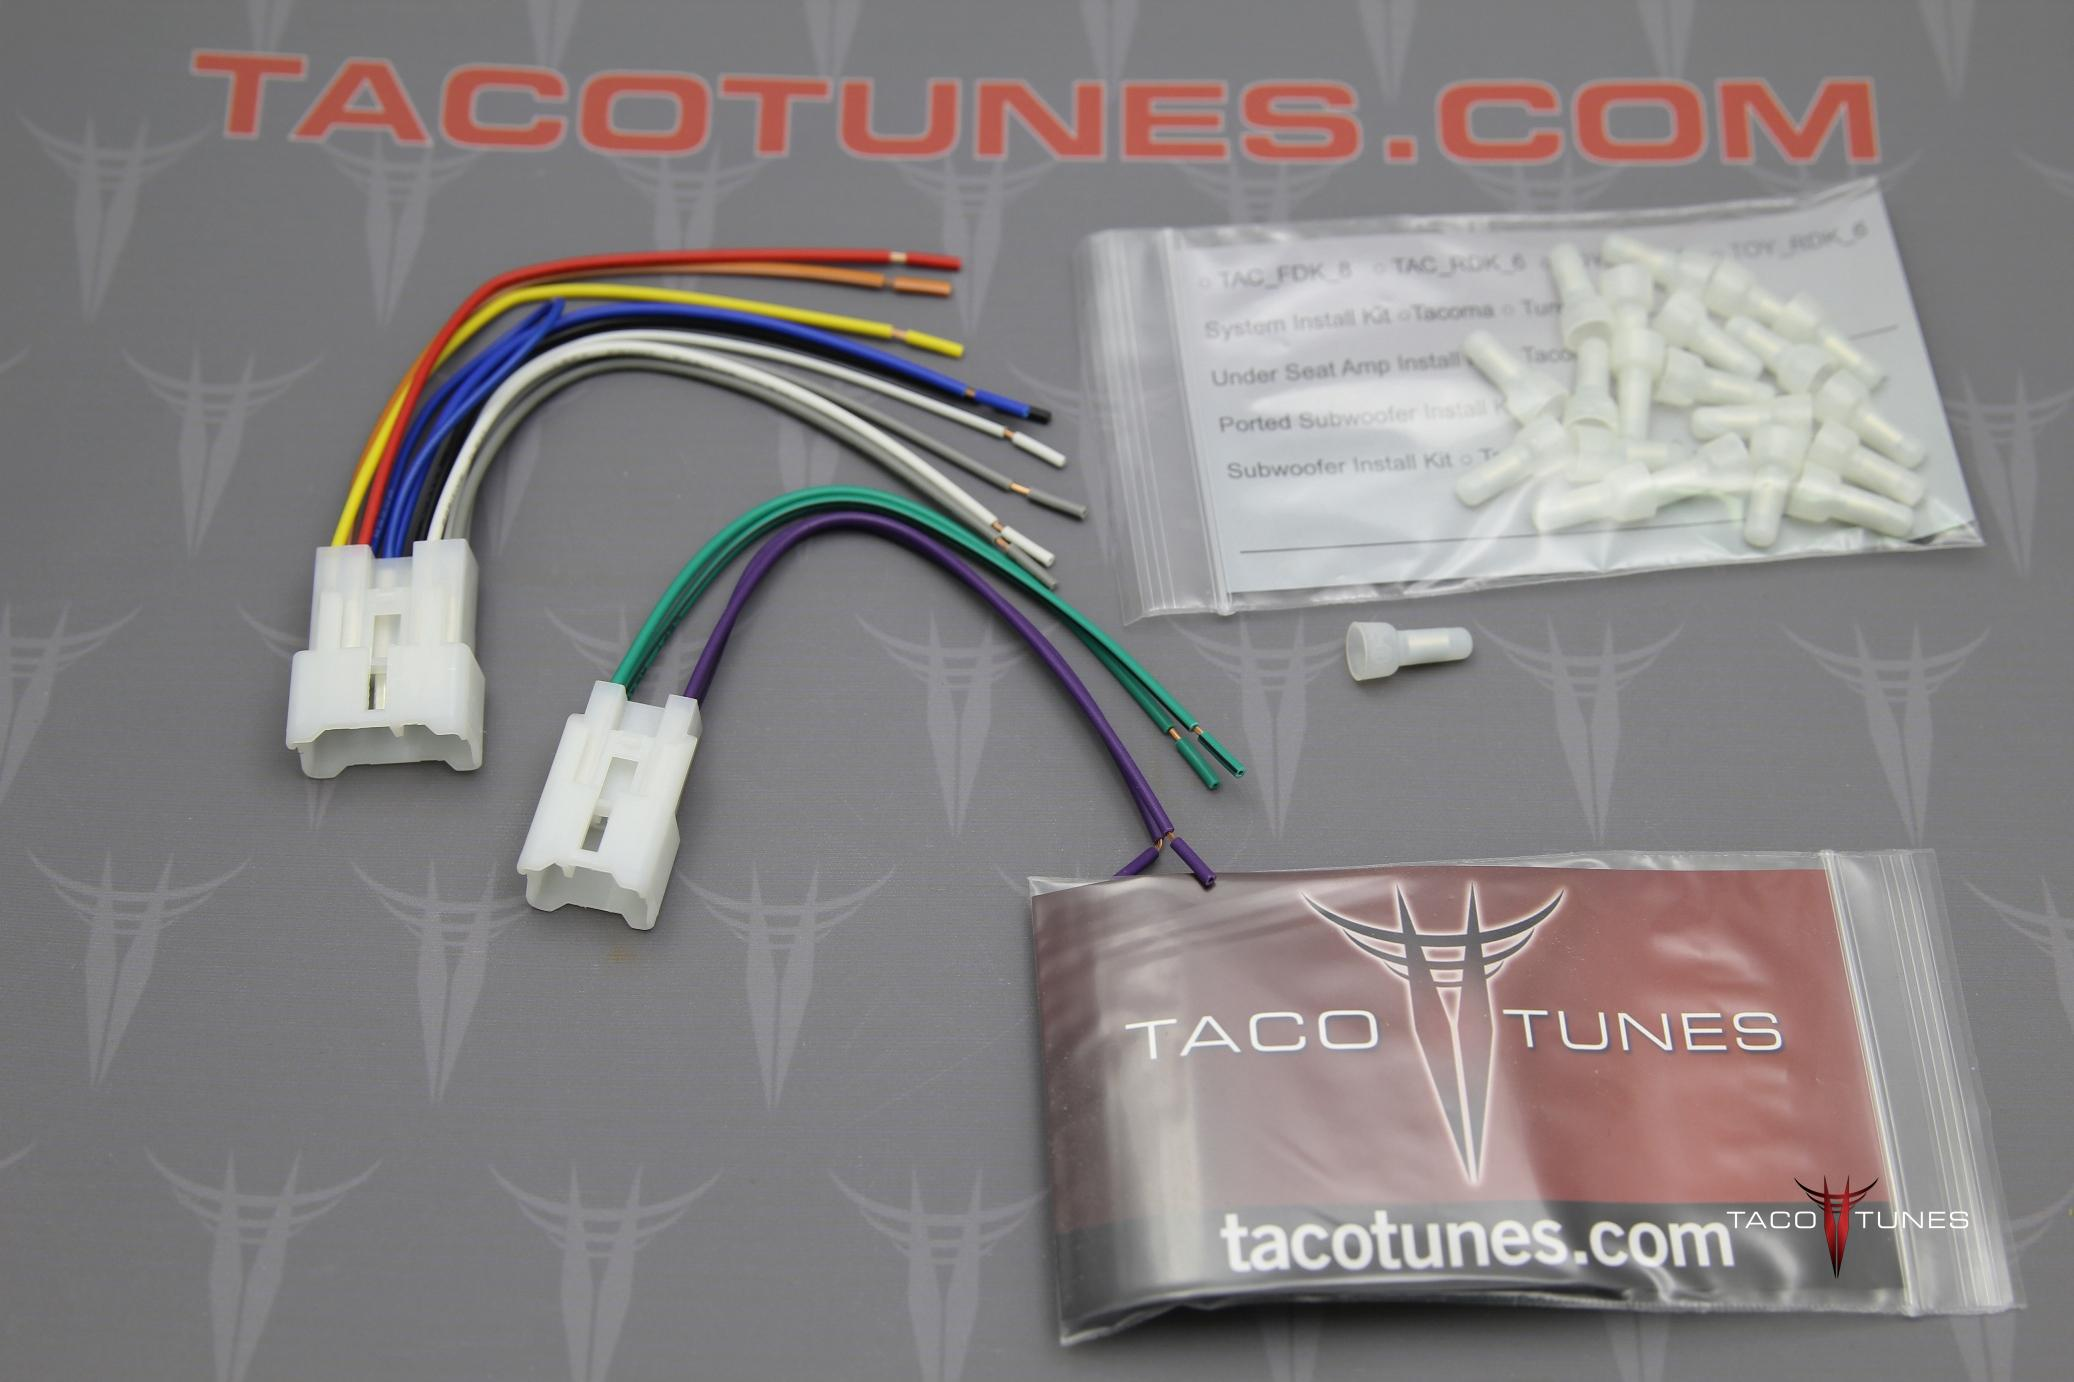 Wiring Rear Subwoofer Diagram Jbl System 2015 - 17 Camry from tacotunes.com